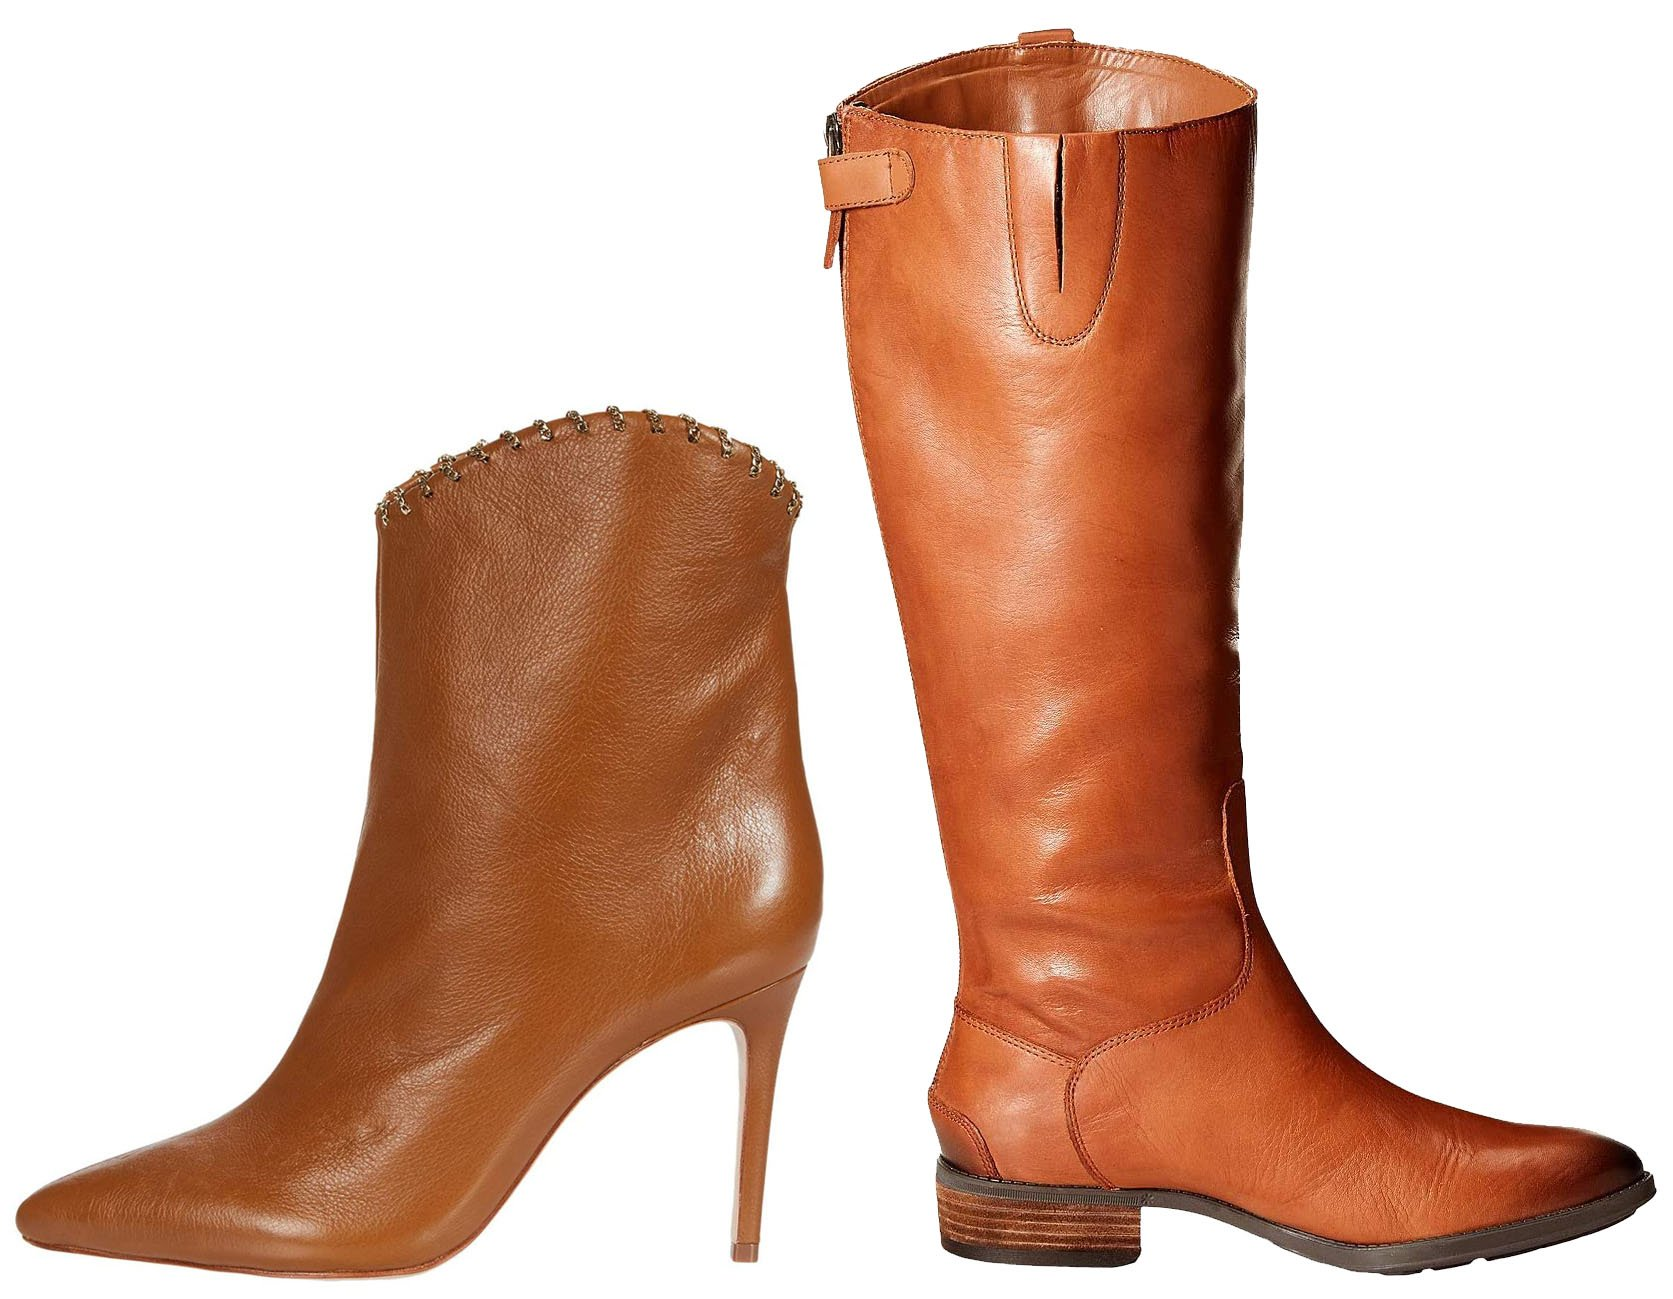 Riding boots (right) cover the calves and come up below the knees